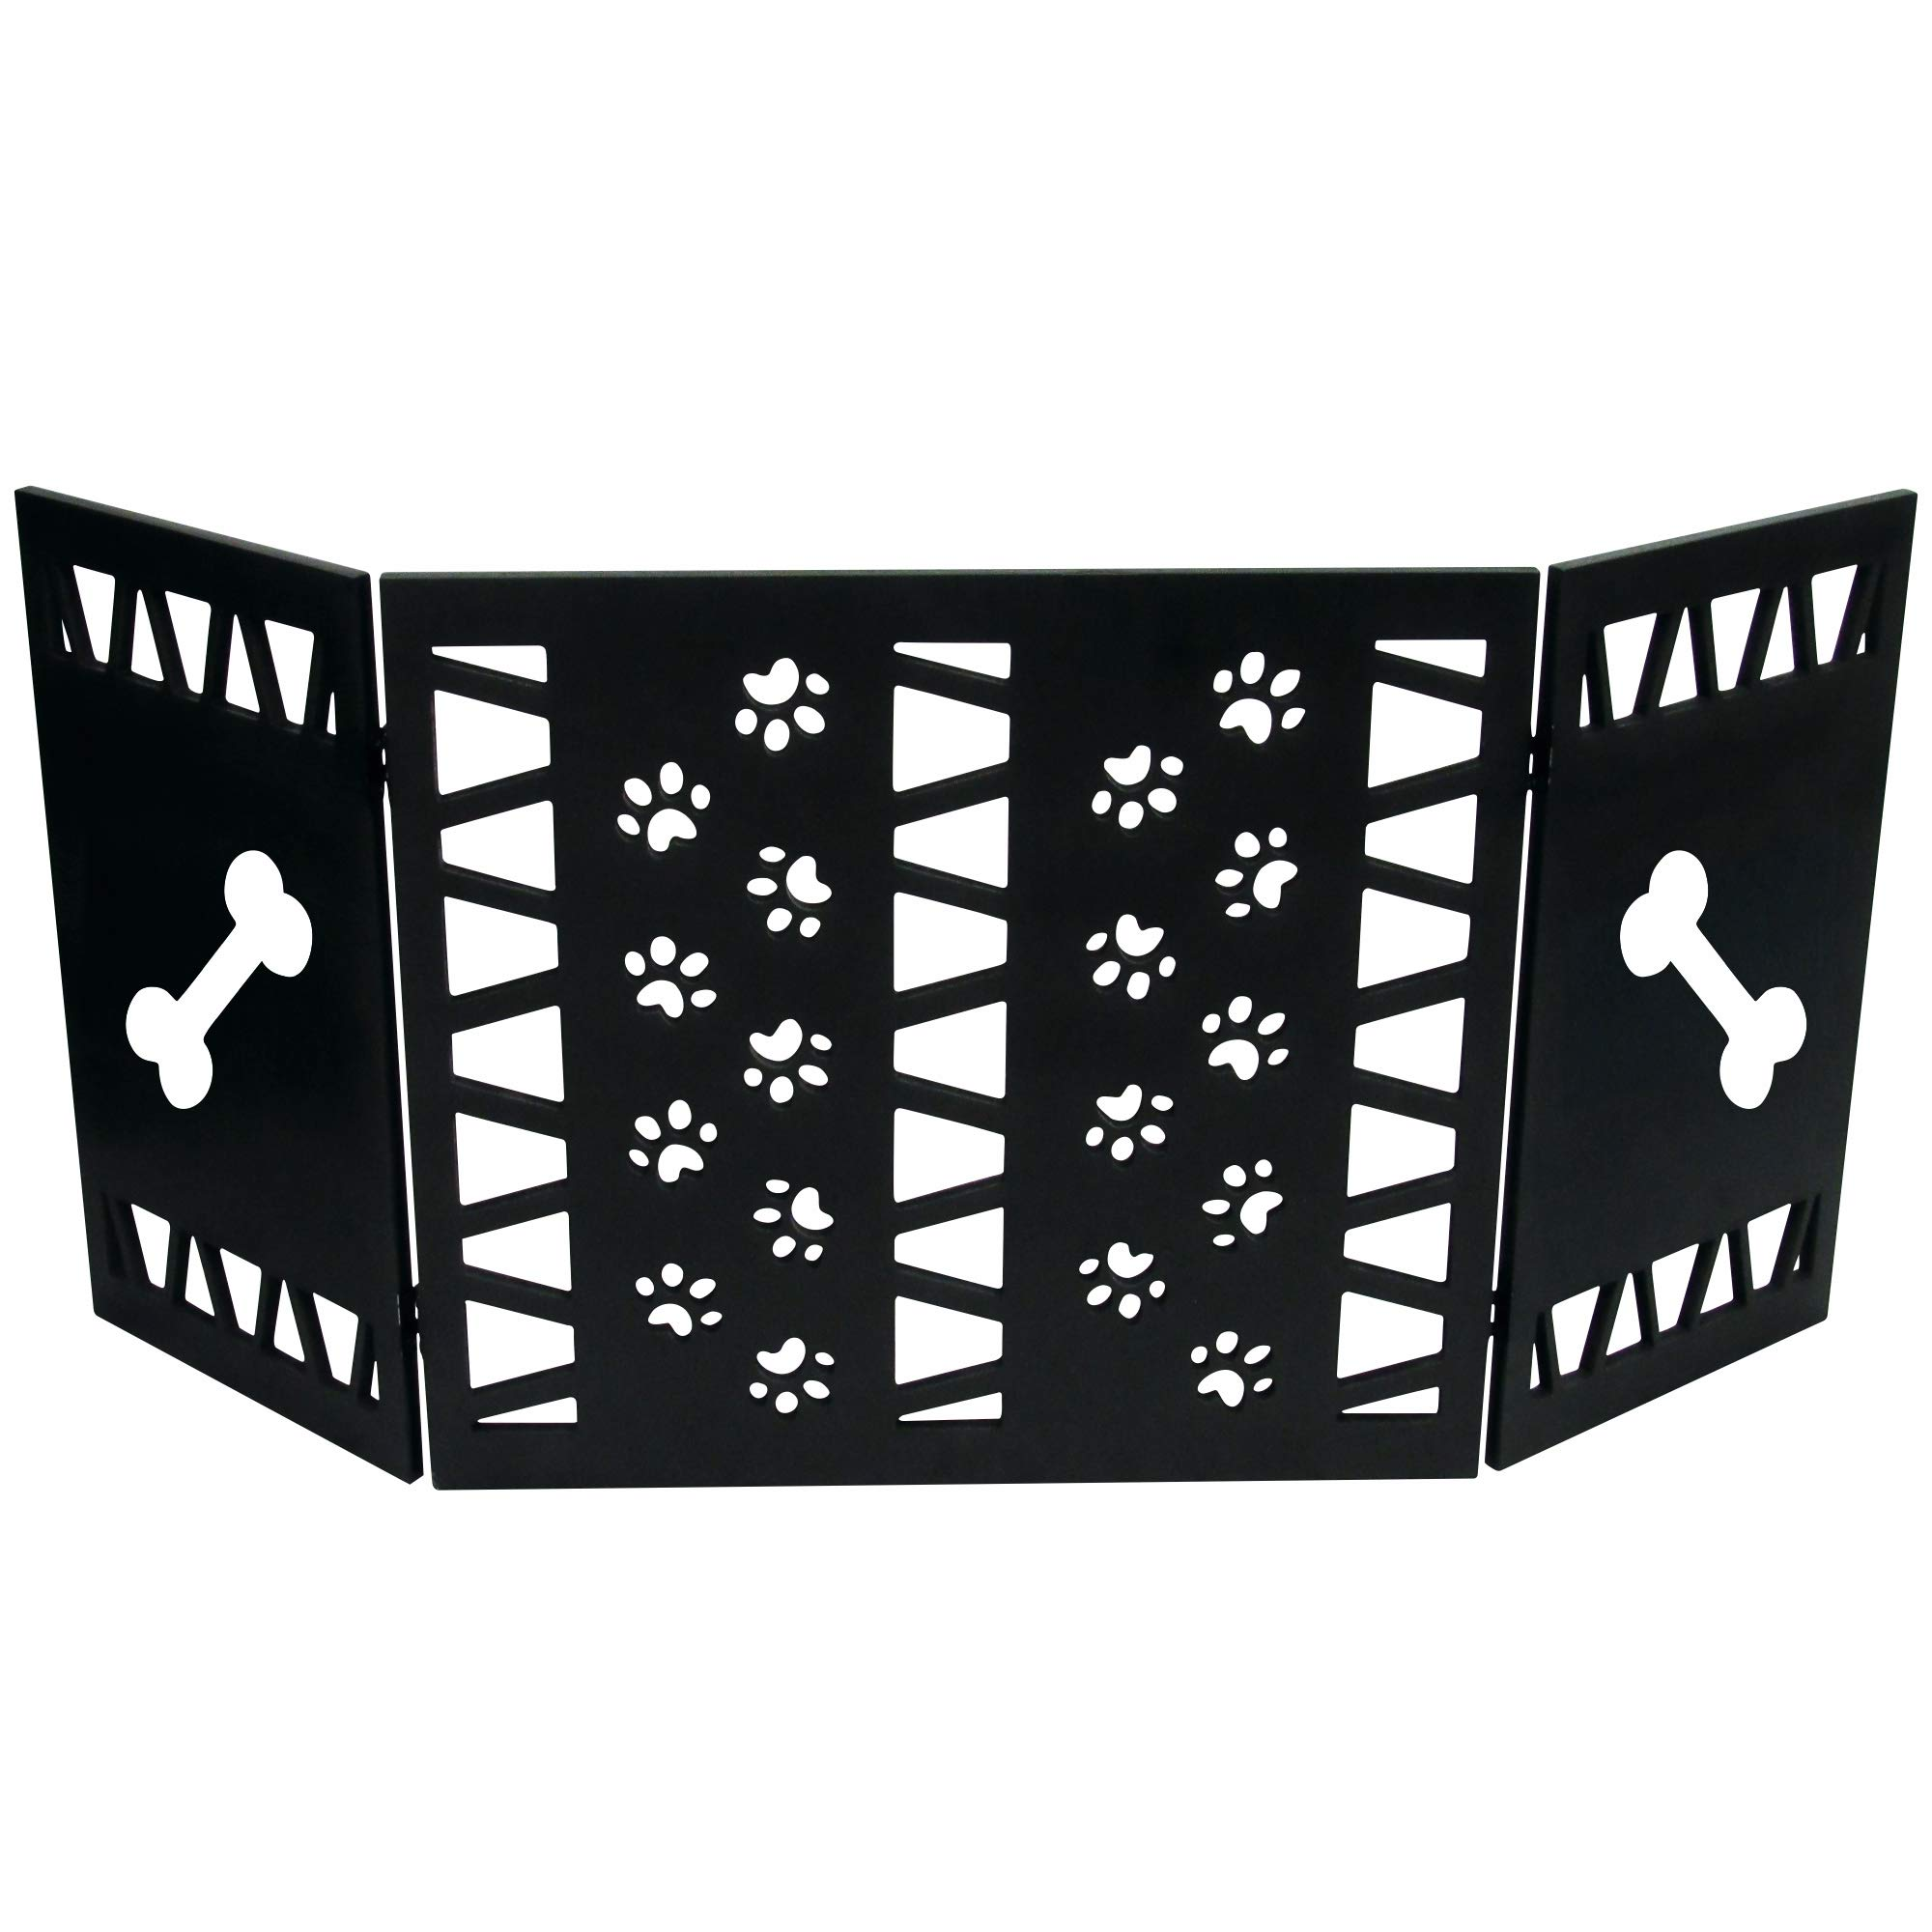 Hoovy Freestanding Decorative Pet Gate: Folding & Extending Dog & Puppy Gate for Home & Office Use   Keeps Pets Safe & Restricted to an Area   No Assembly Required (Paw Decor, Black)